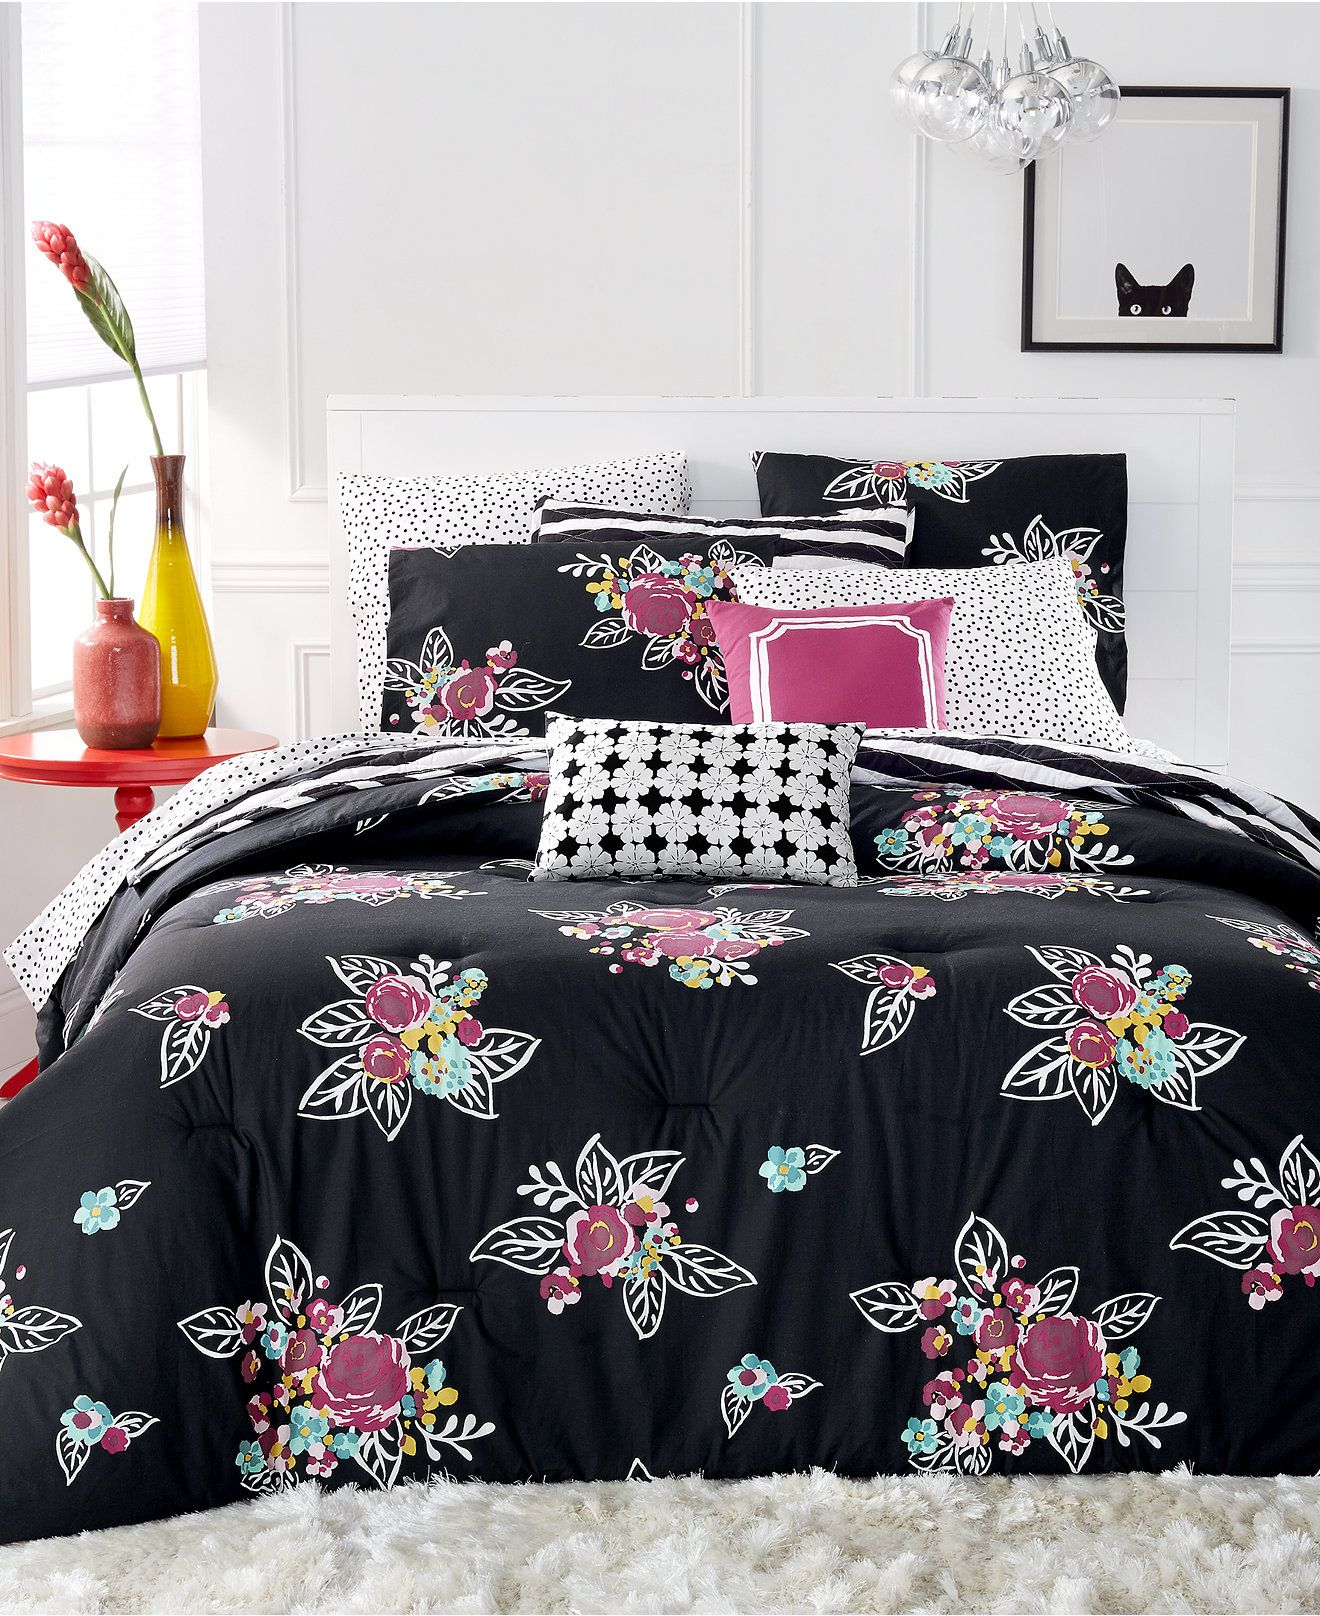 Black and pink bed sheets - Martha Stewart Collection Whim Night Blooms 4 Pc Twin Twin Xl Comforter Set Bed